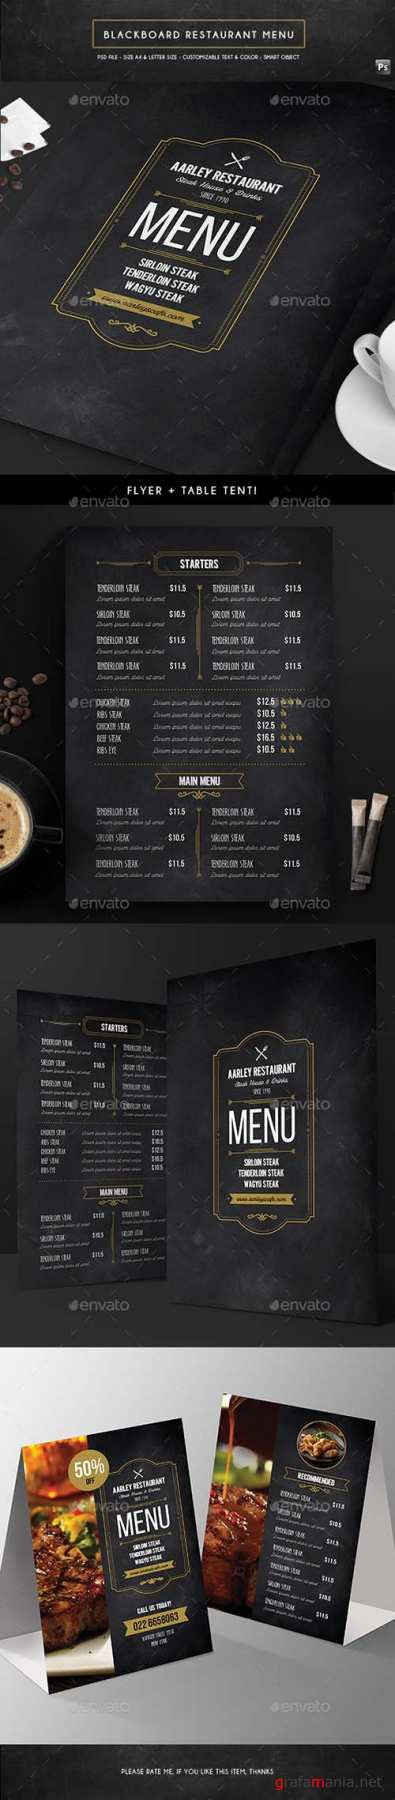 GR - Blackboard Menu Flyer + Table Tent 16711712